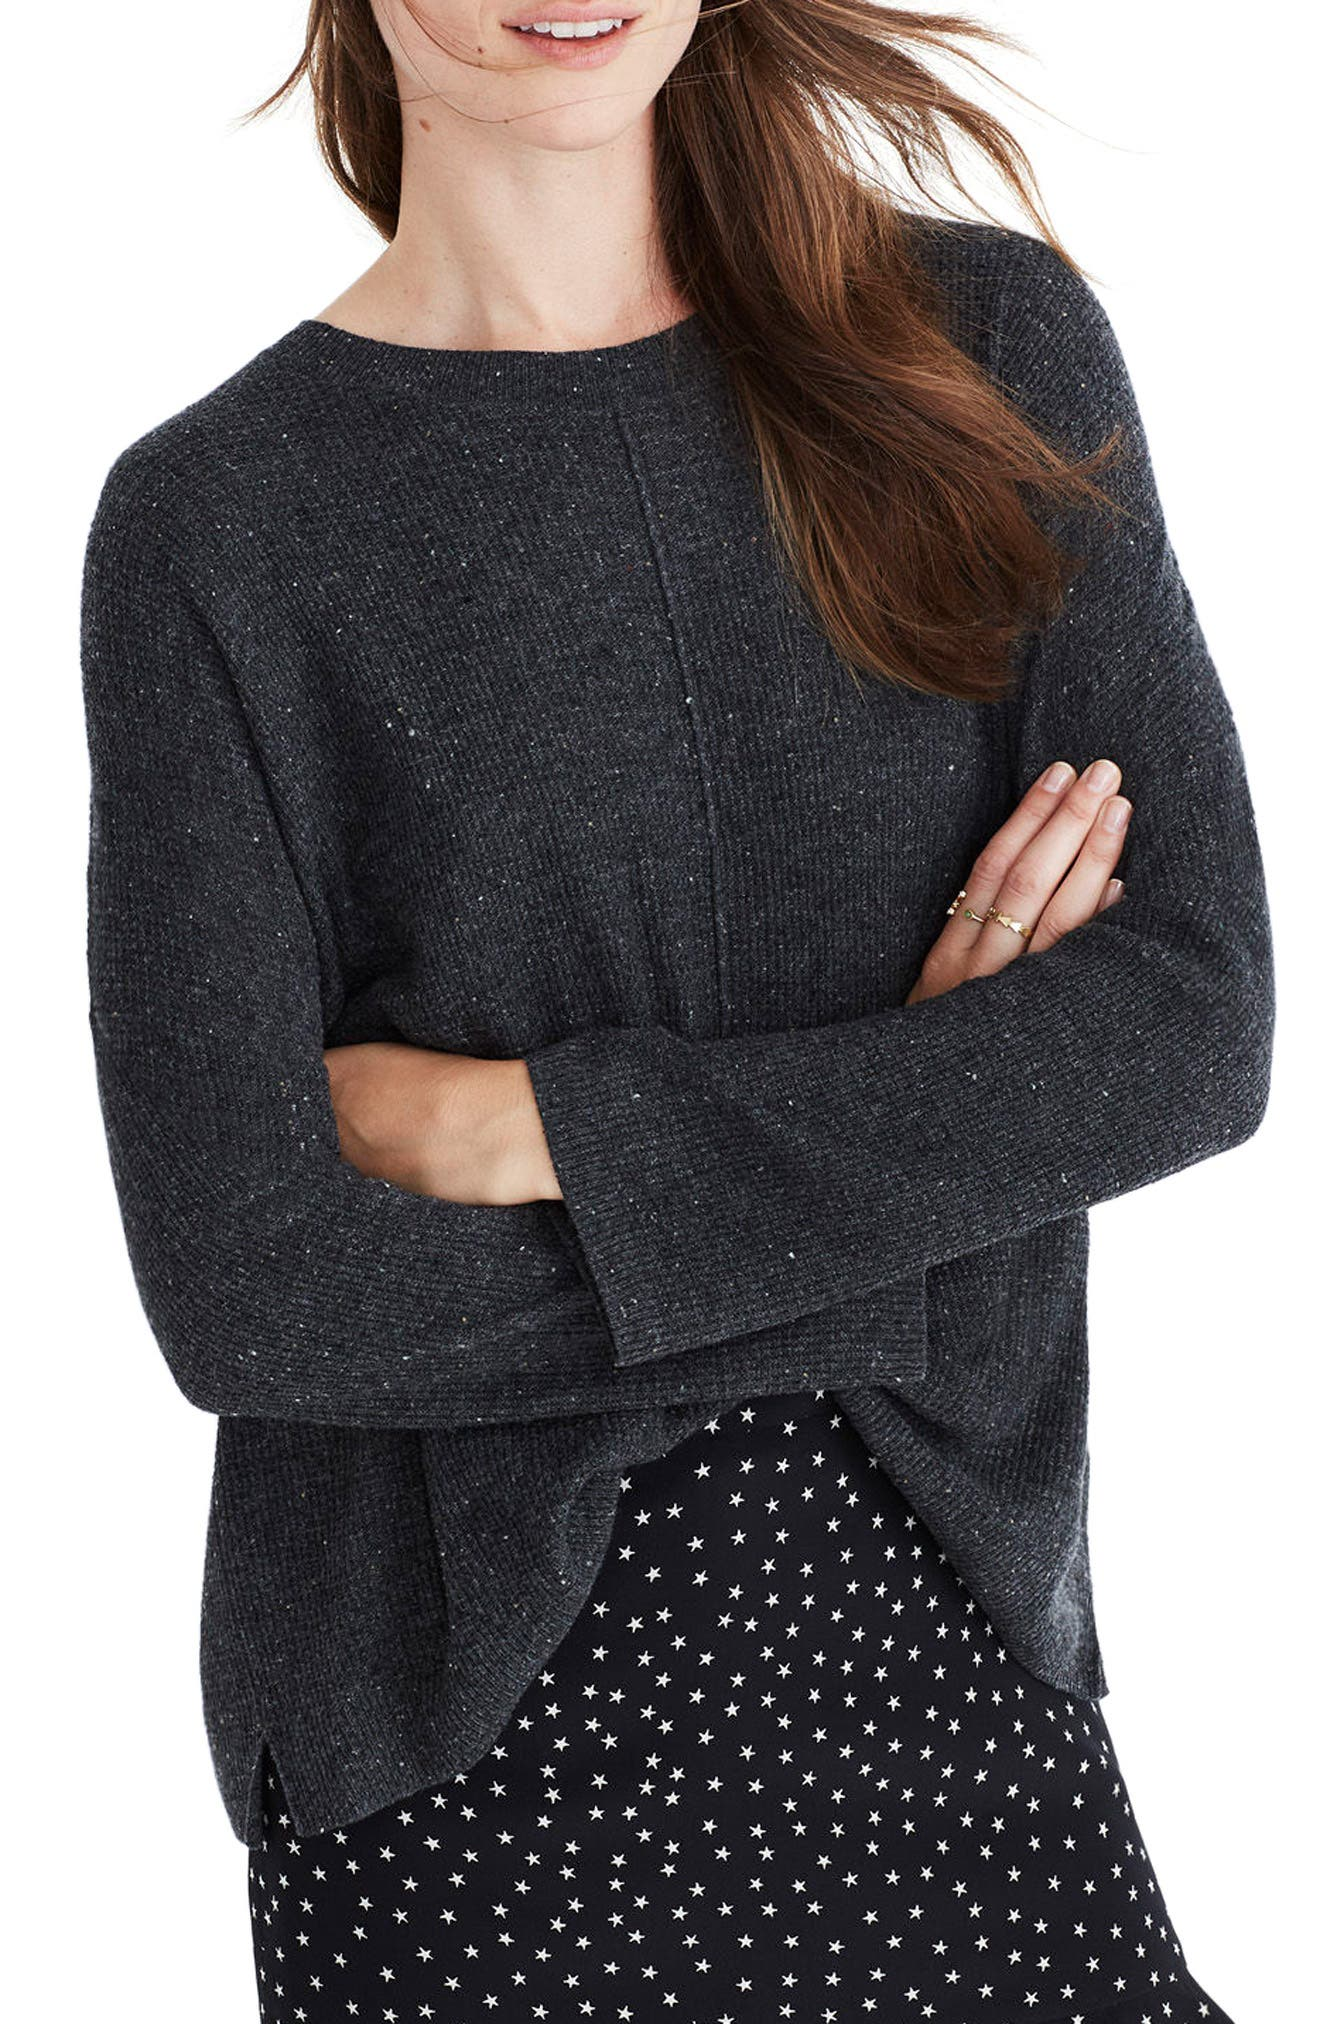 Northroad Pullover Sweater,                         Main,                         color, 020